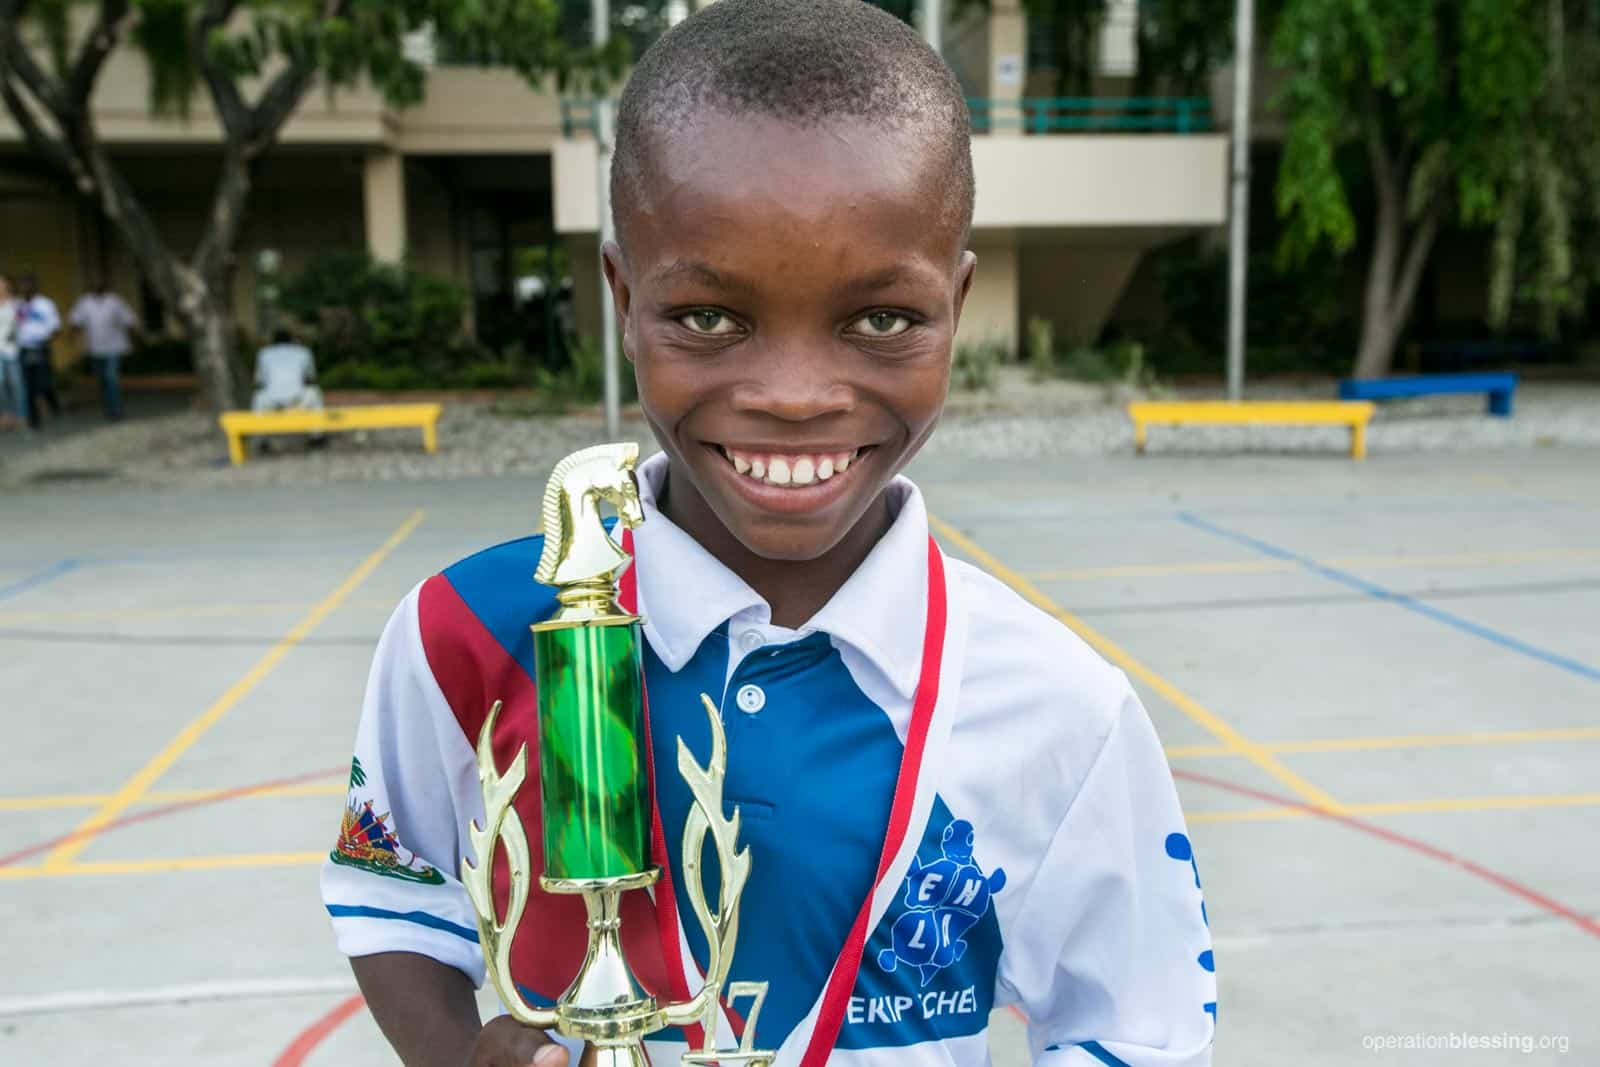 Haitian student receives chess trophy because Operation Blessing is investing in Haiti's children.